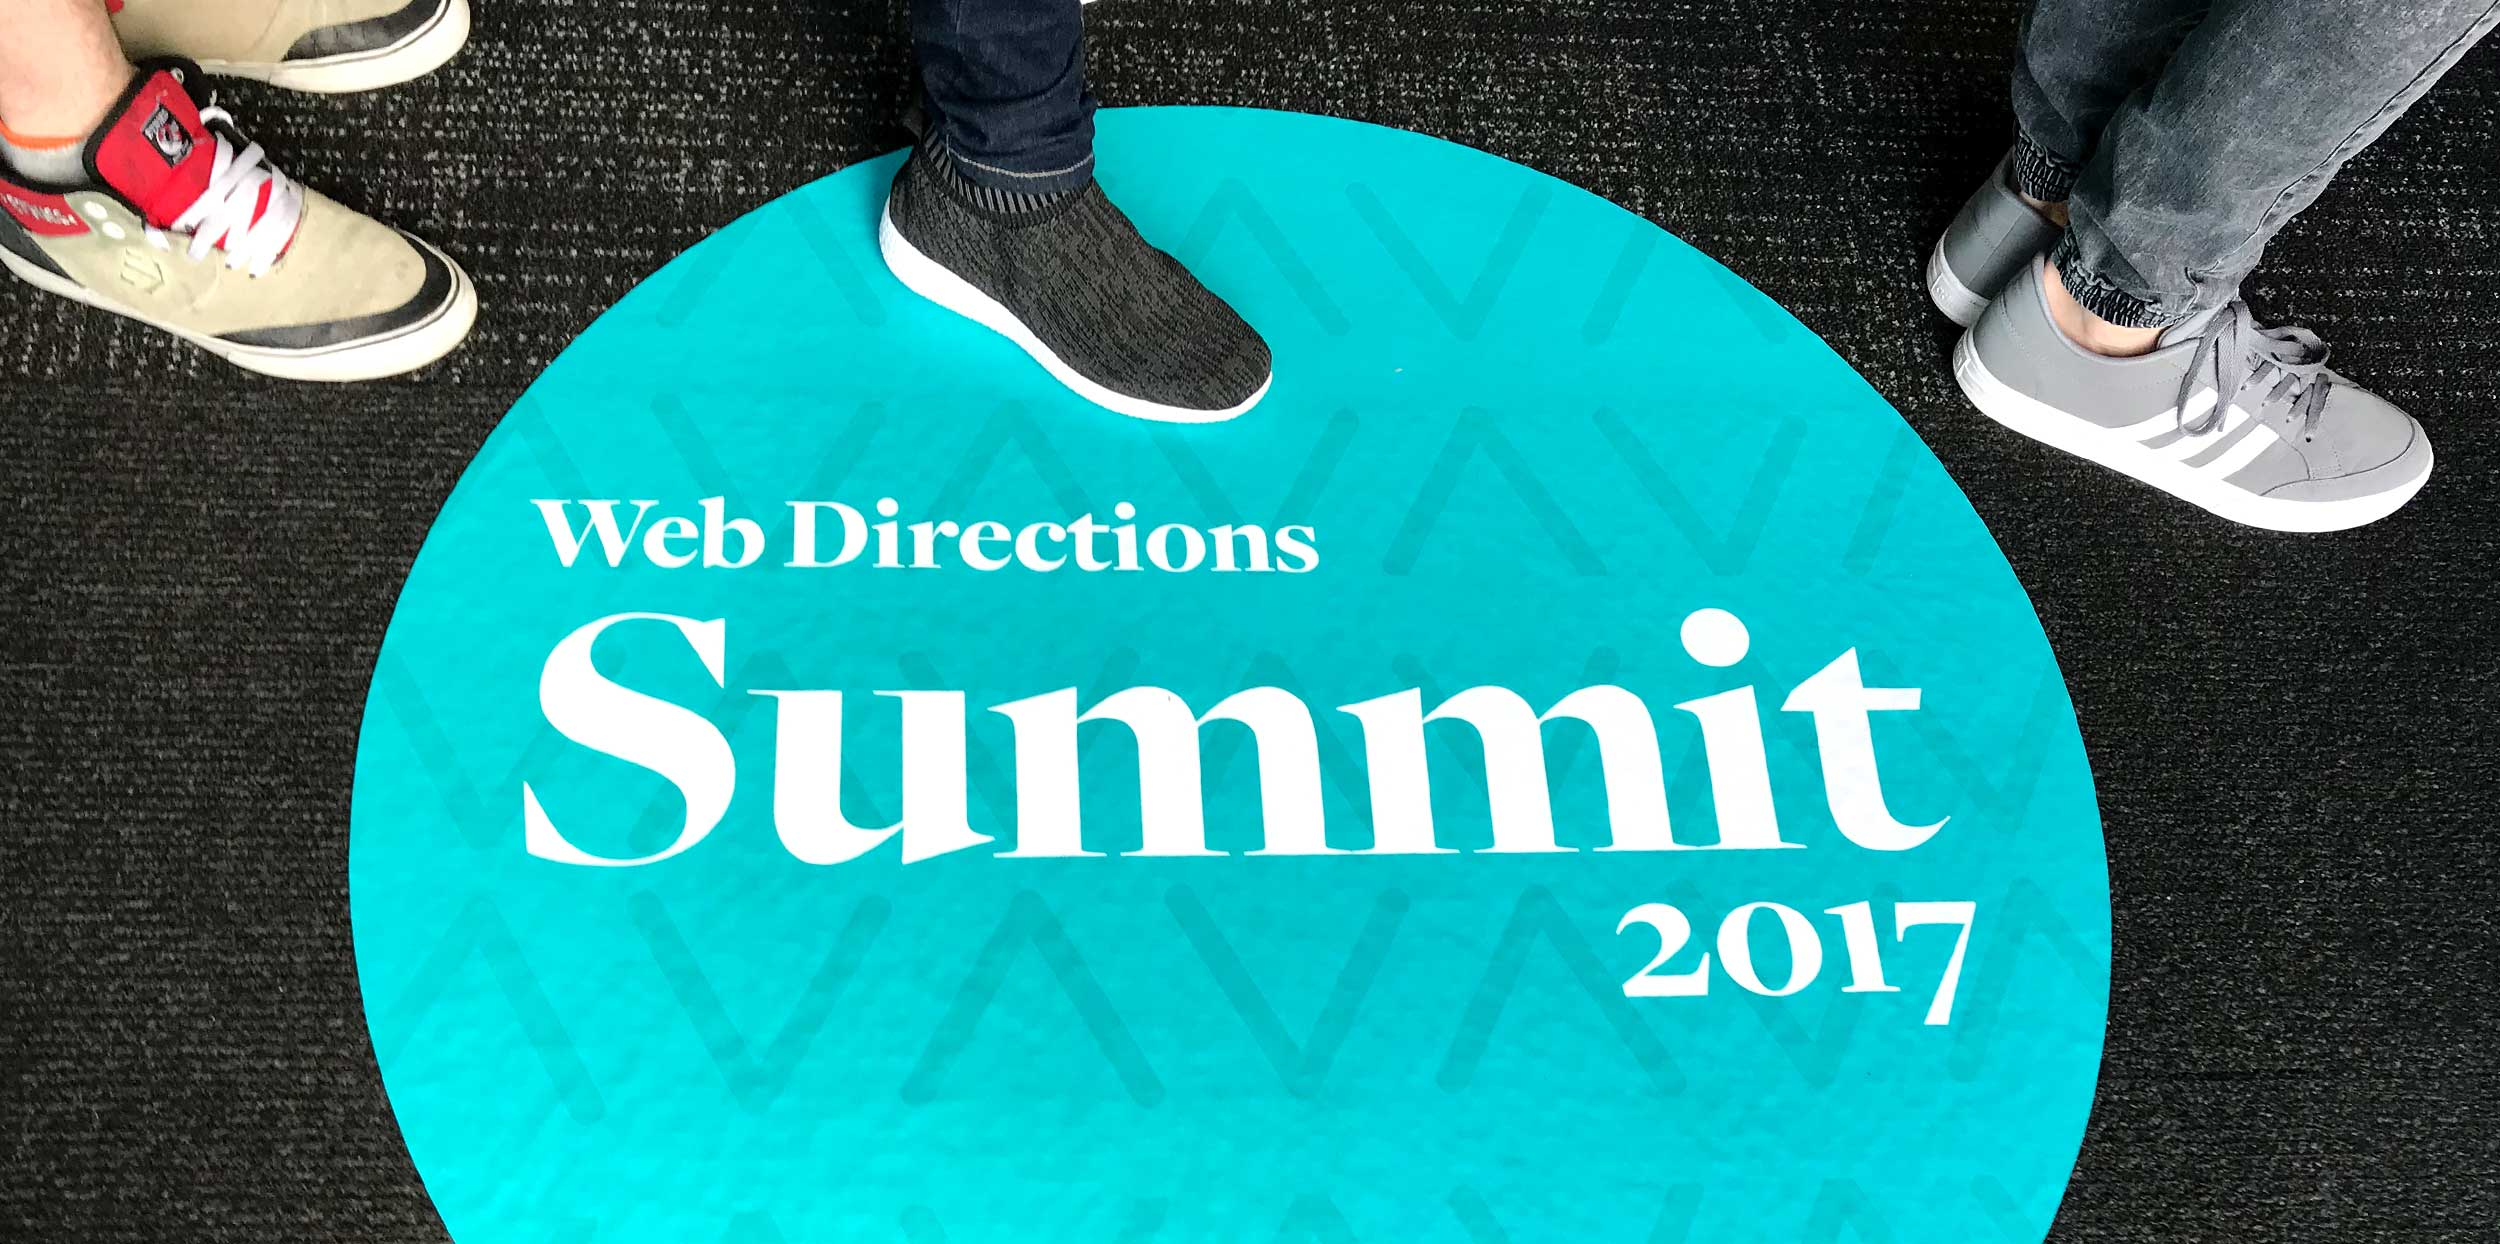 Event-Branding-Graphic-Design-Handle-Branding-WD17_Summit_02.jpg